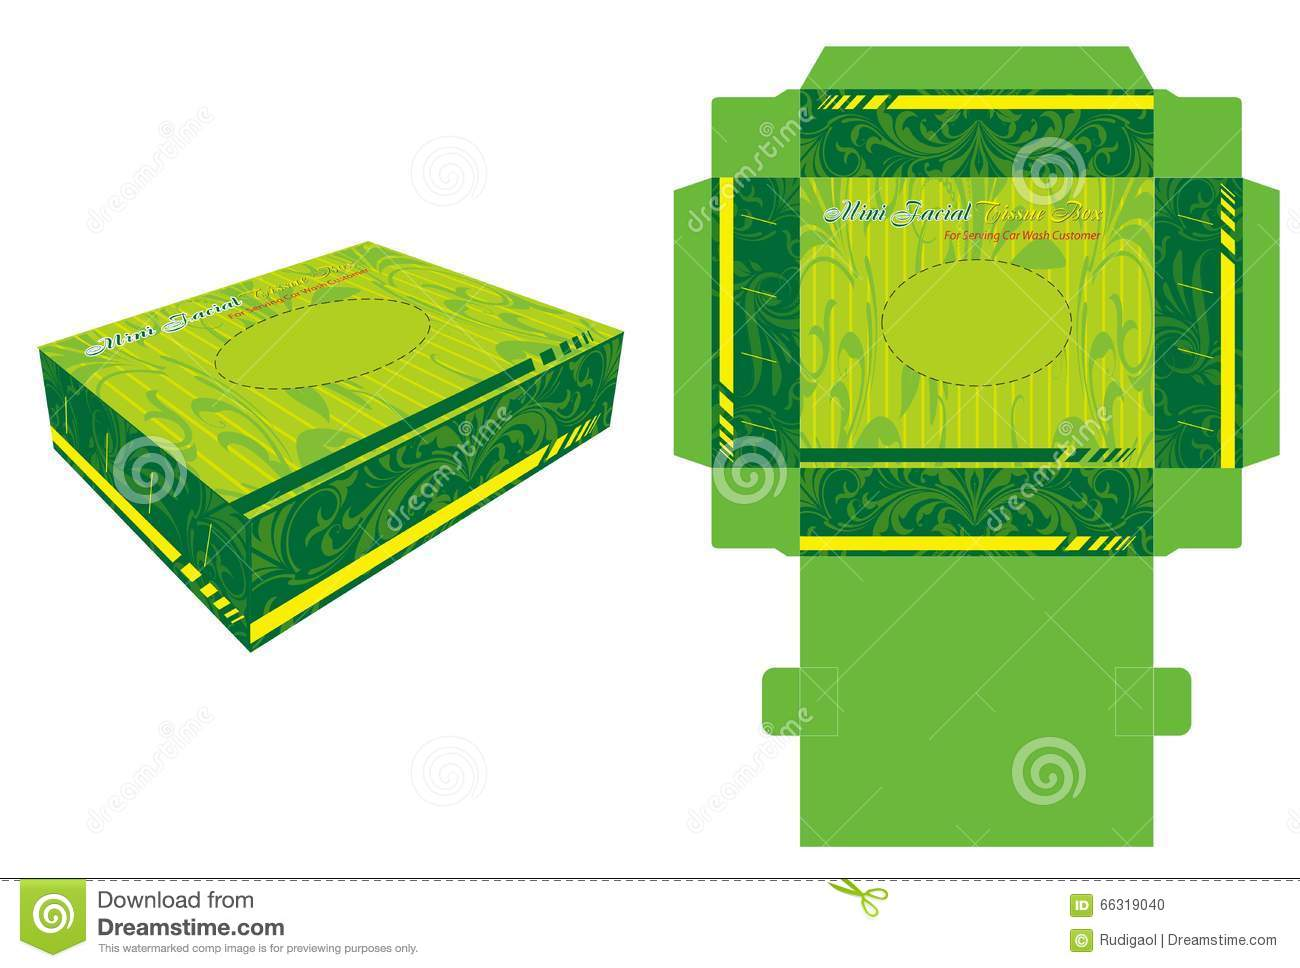 Background And Die Cut Template For Facial Tissue Box